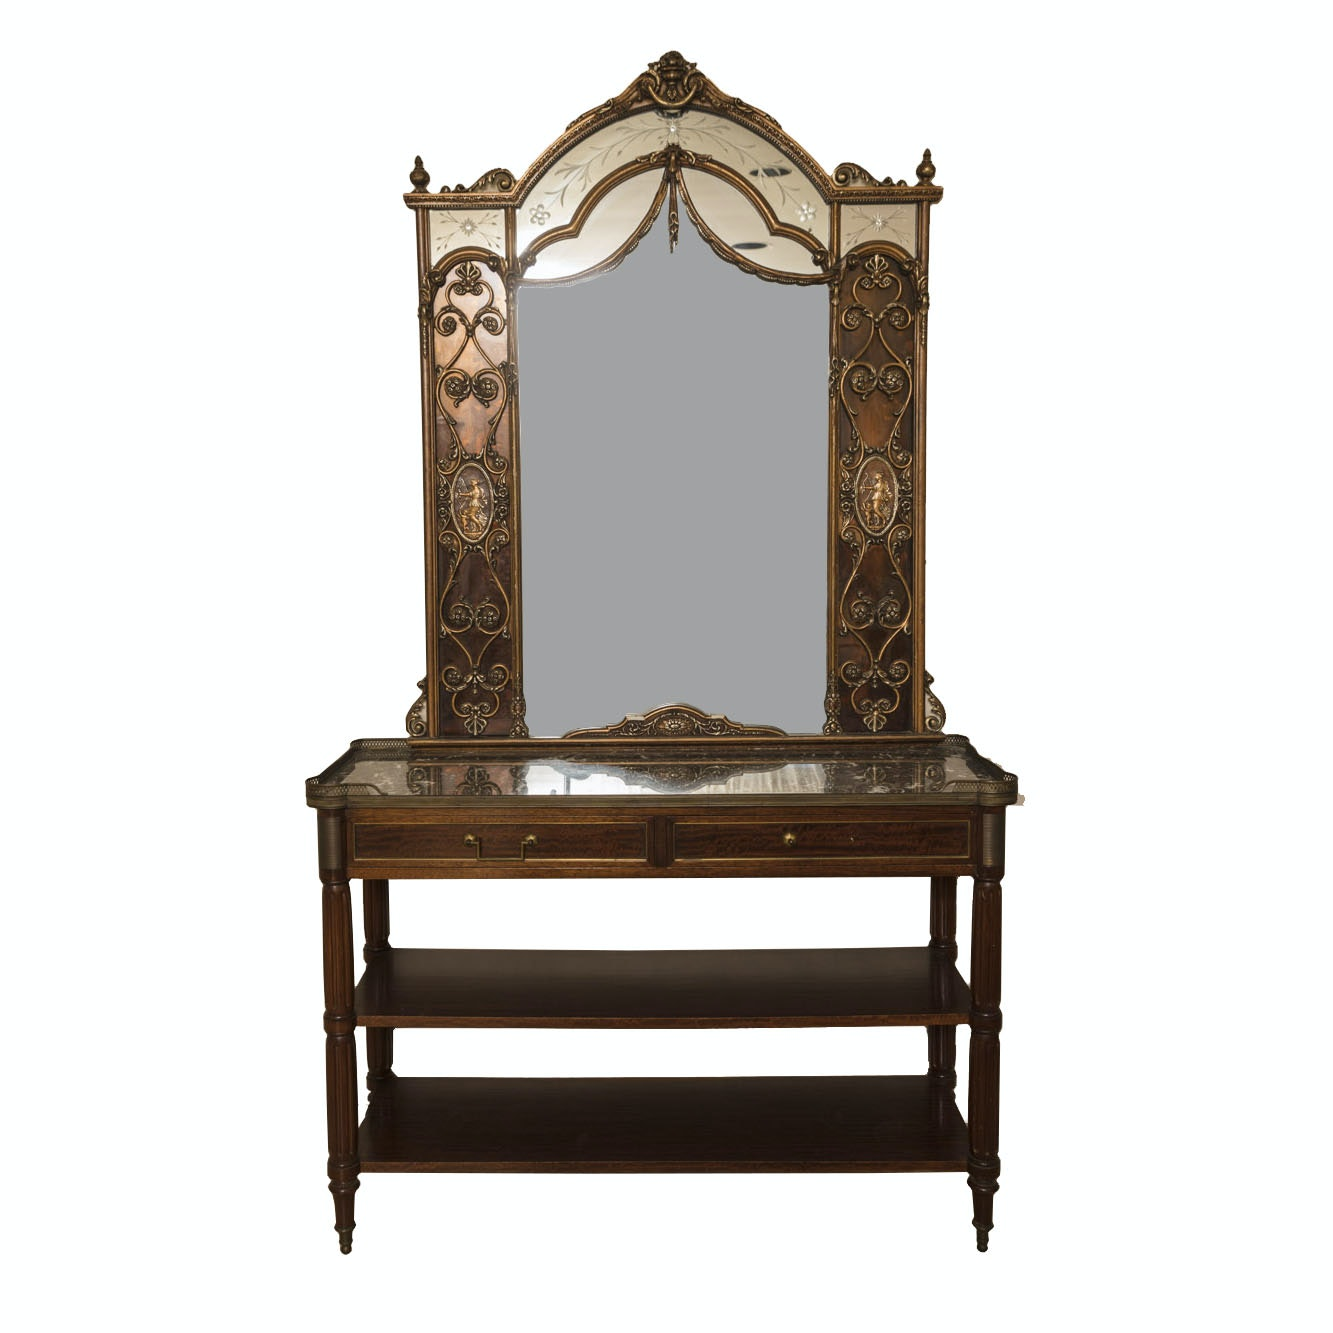 Louis XVI Style Mahogany Console With Neoclassical Gilt Mirror